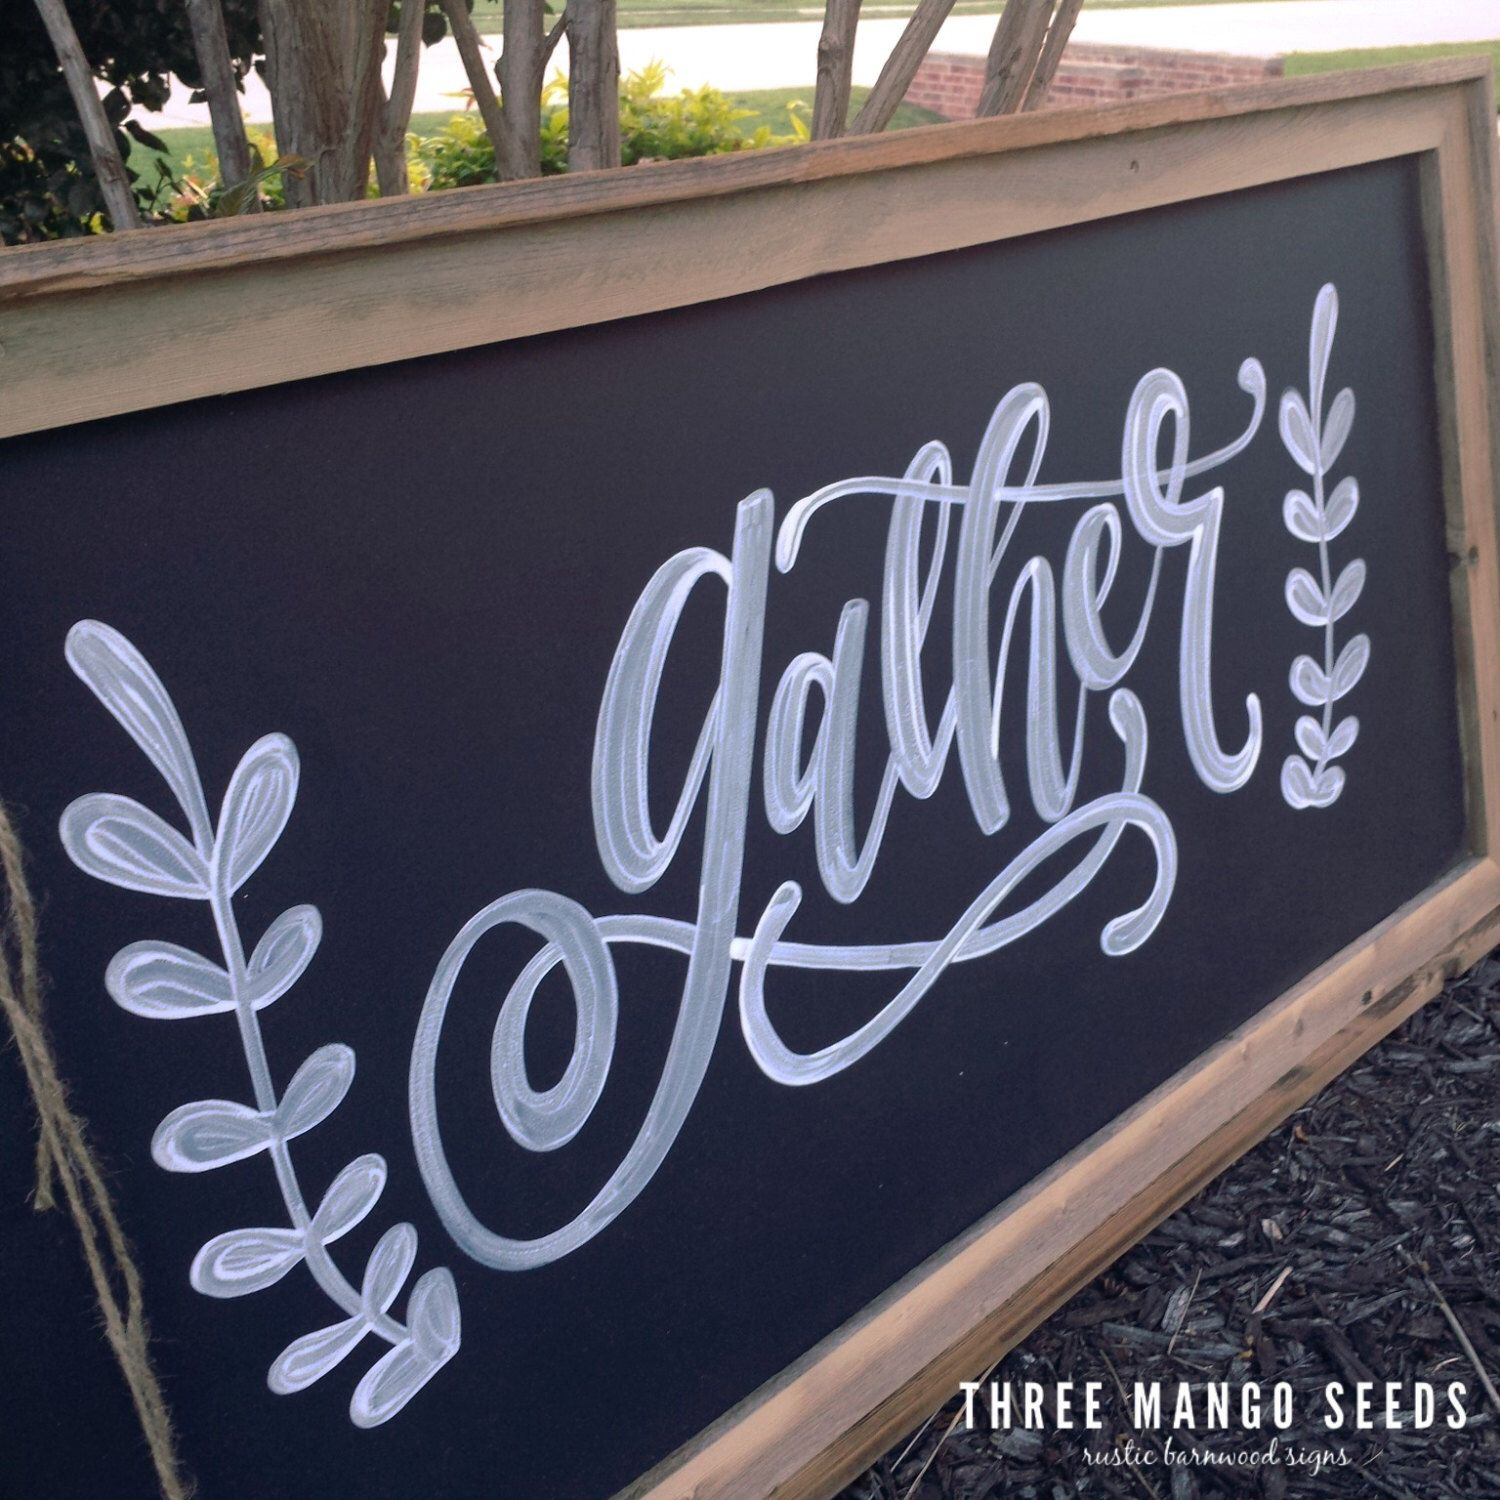 Fixer upper kitchen wall decor - Gather Sign Large Wall Art Kitchen Decor Fixer Upper Style Wood Sign Family Room Sign Handpainted Farmhouse Chalkboard Style